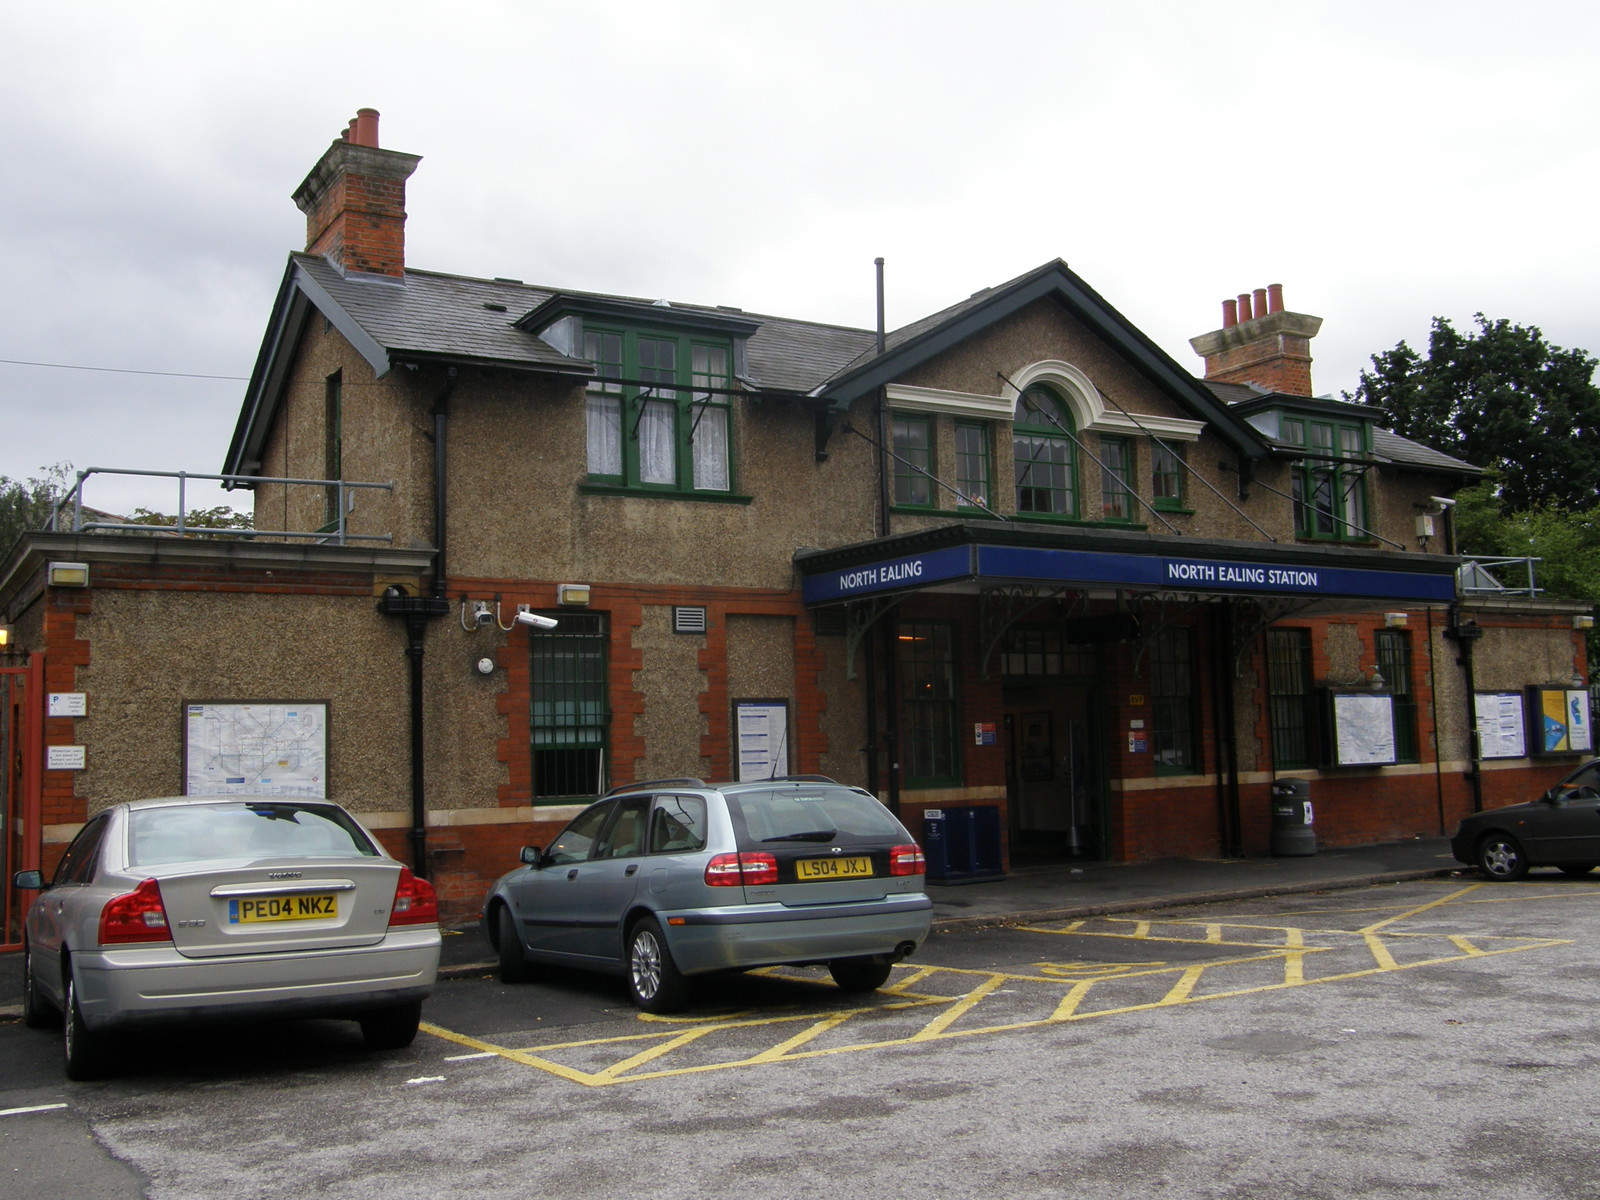 North Ealing station